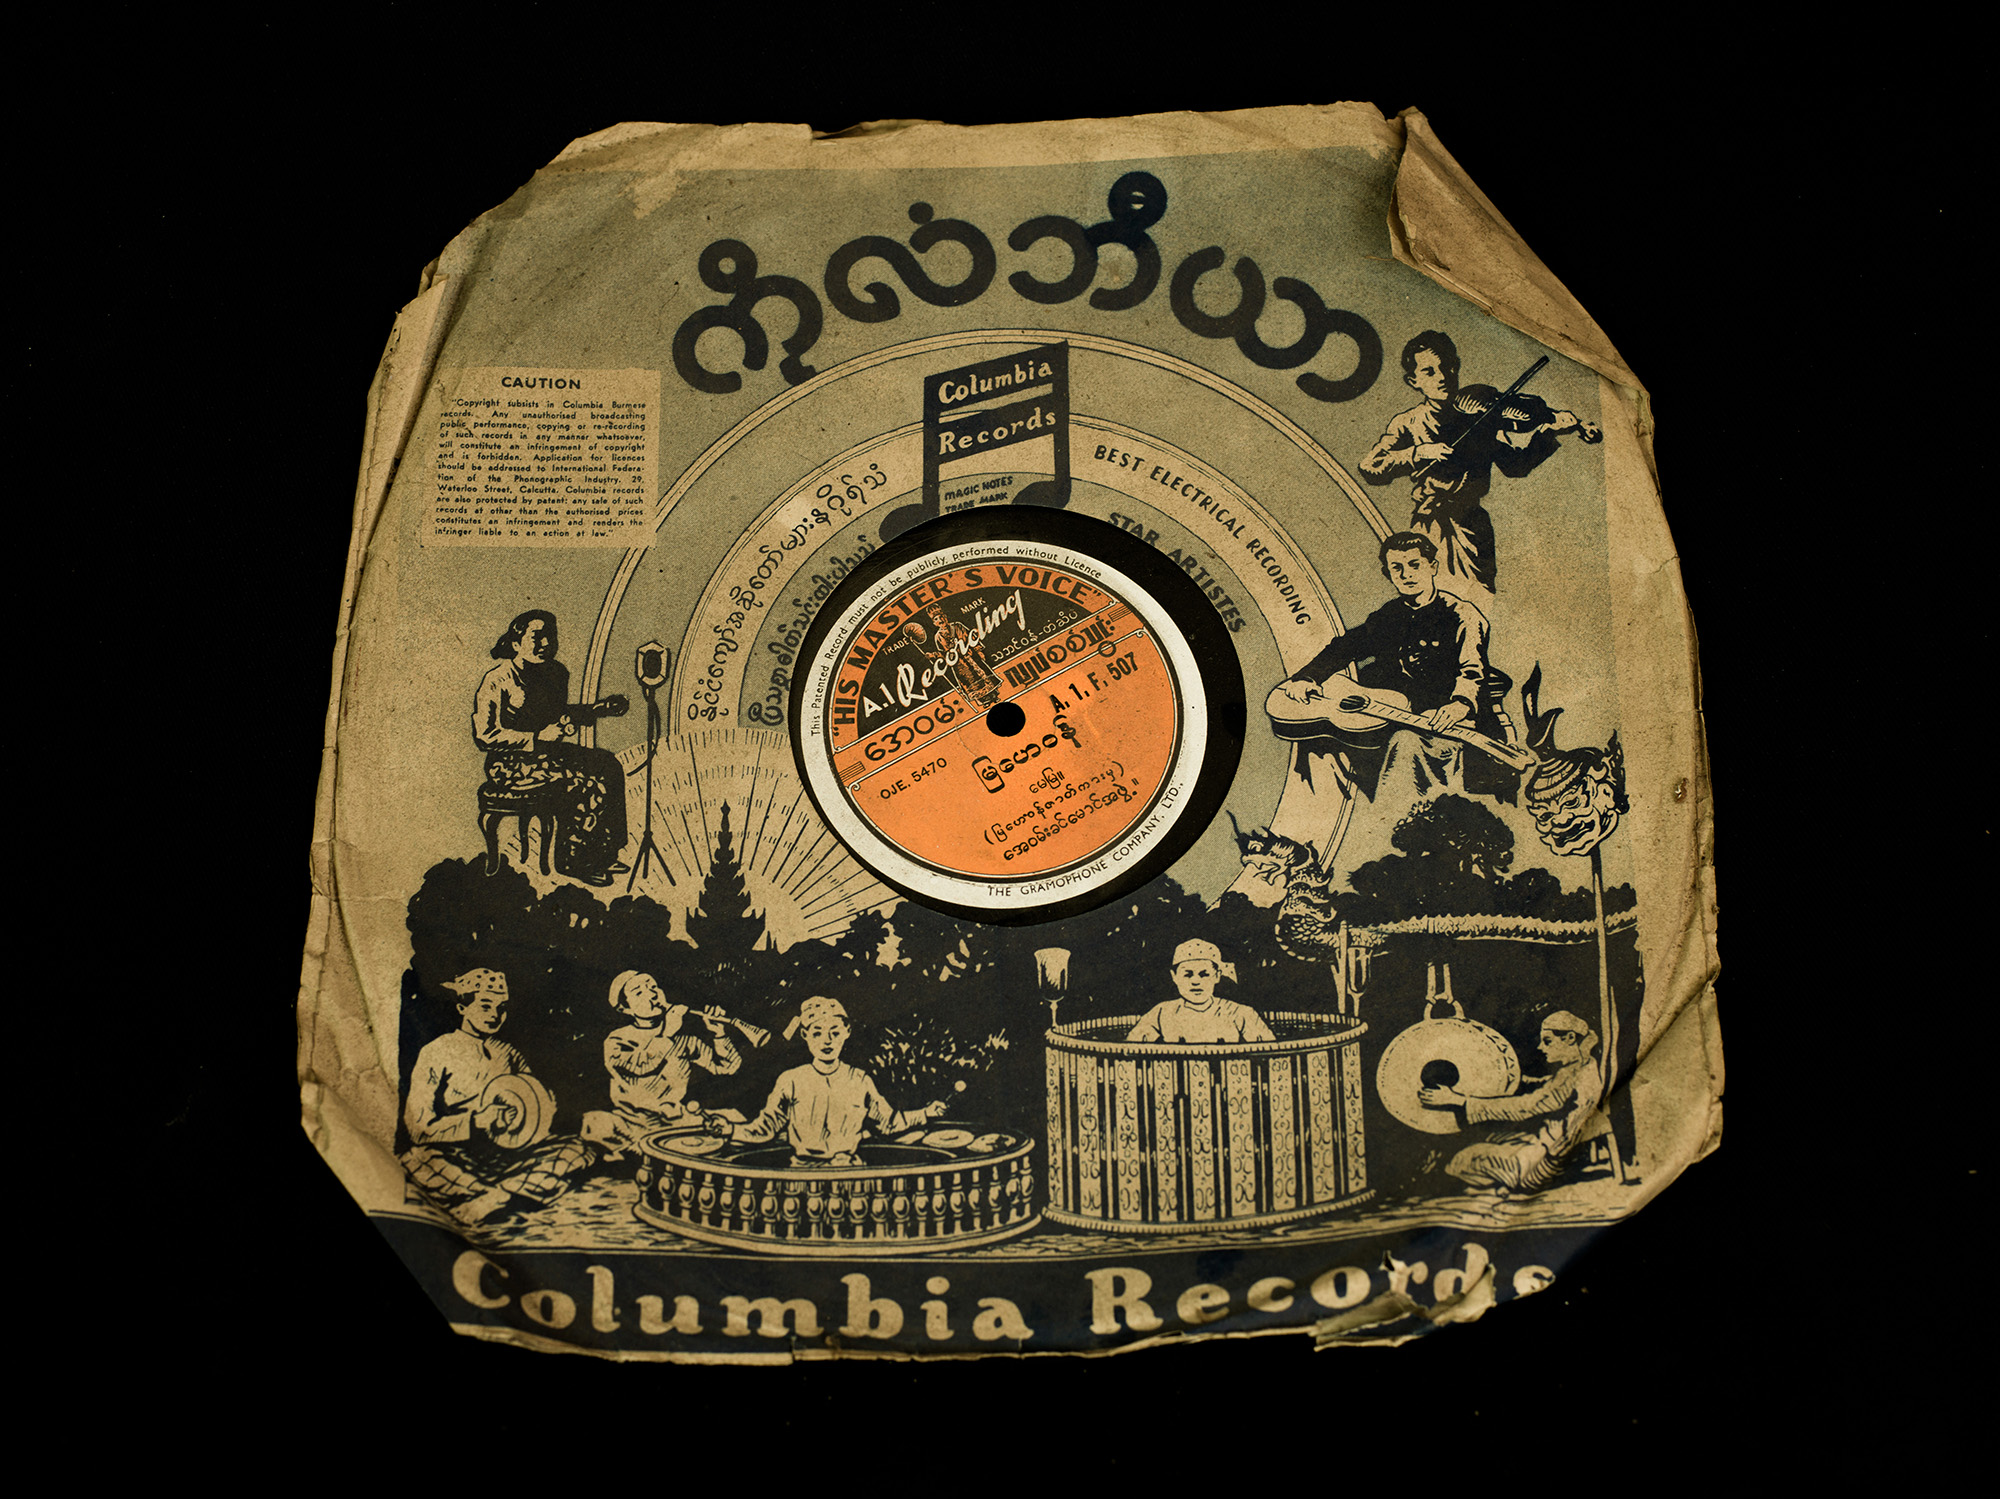 A soundtrack on LP disc for the 1953 A1 film,  Yadanarpone  (A Pile Of Jewels), which won Best Picture and Best Director at the Academy Awards that year. Set in Yangon and Meiktila, the film is a story of adultery and deceit within a close-knit community.